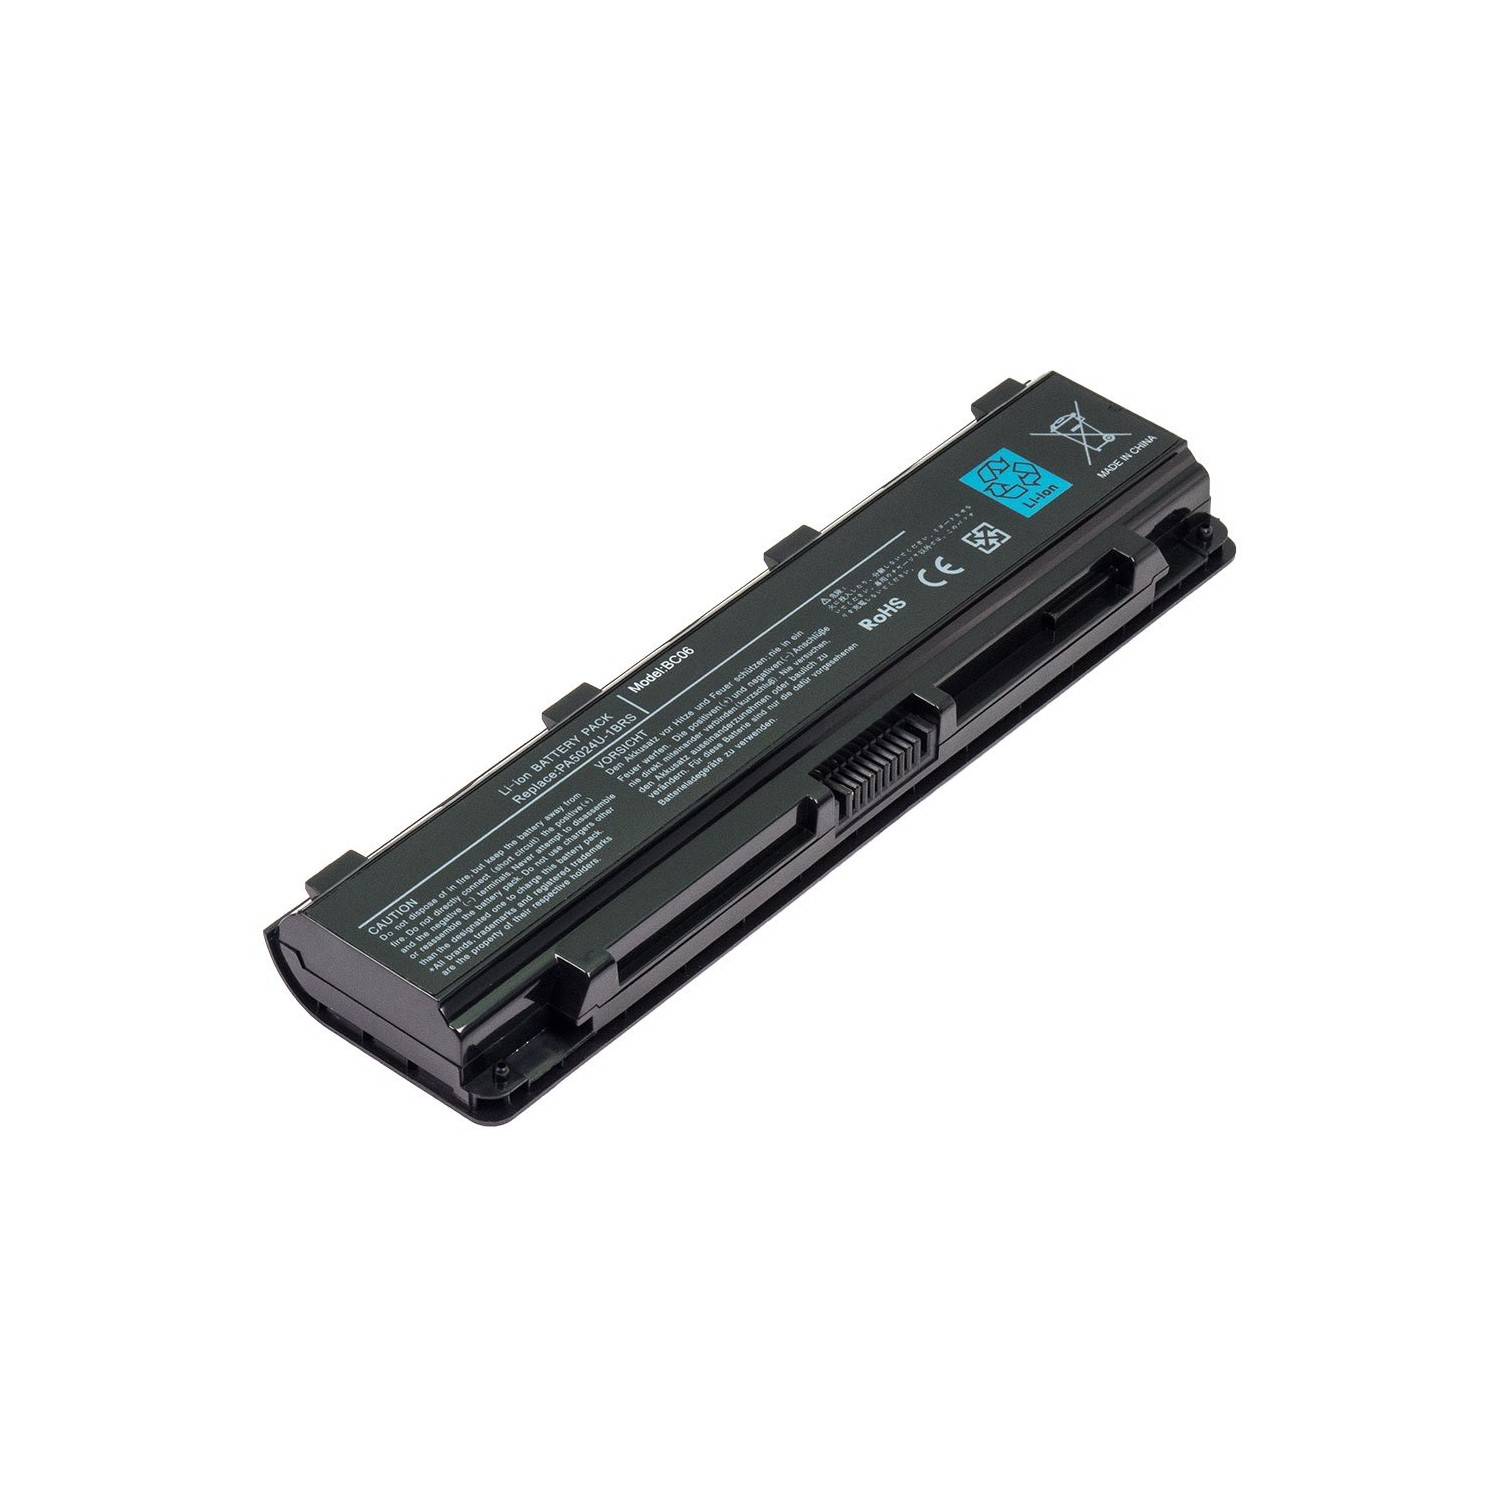 Laptop Battery Replacement For Toshiba Satellite C50 A Pa5026u 1brs Keyboard Satelite L850 L850d L855 L855d C850 C850d C855 C870 Pa5027u Pa5121u Batteries Best Buy Canada